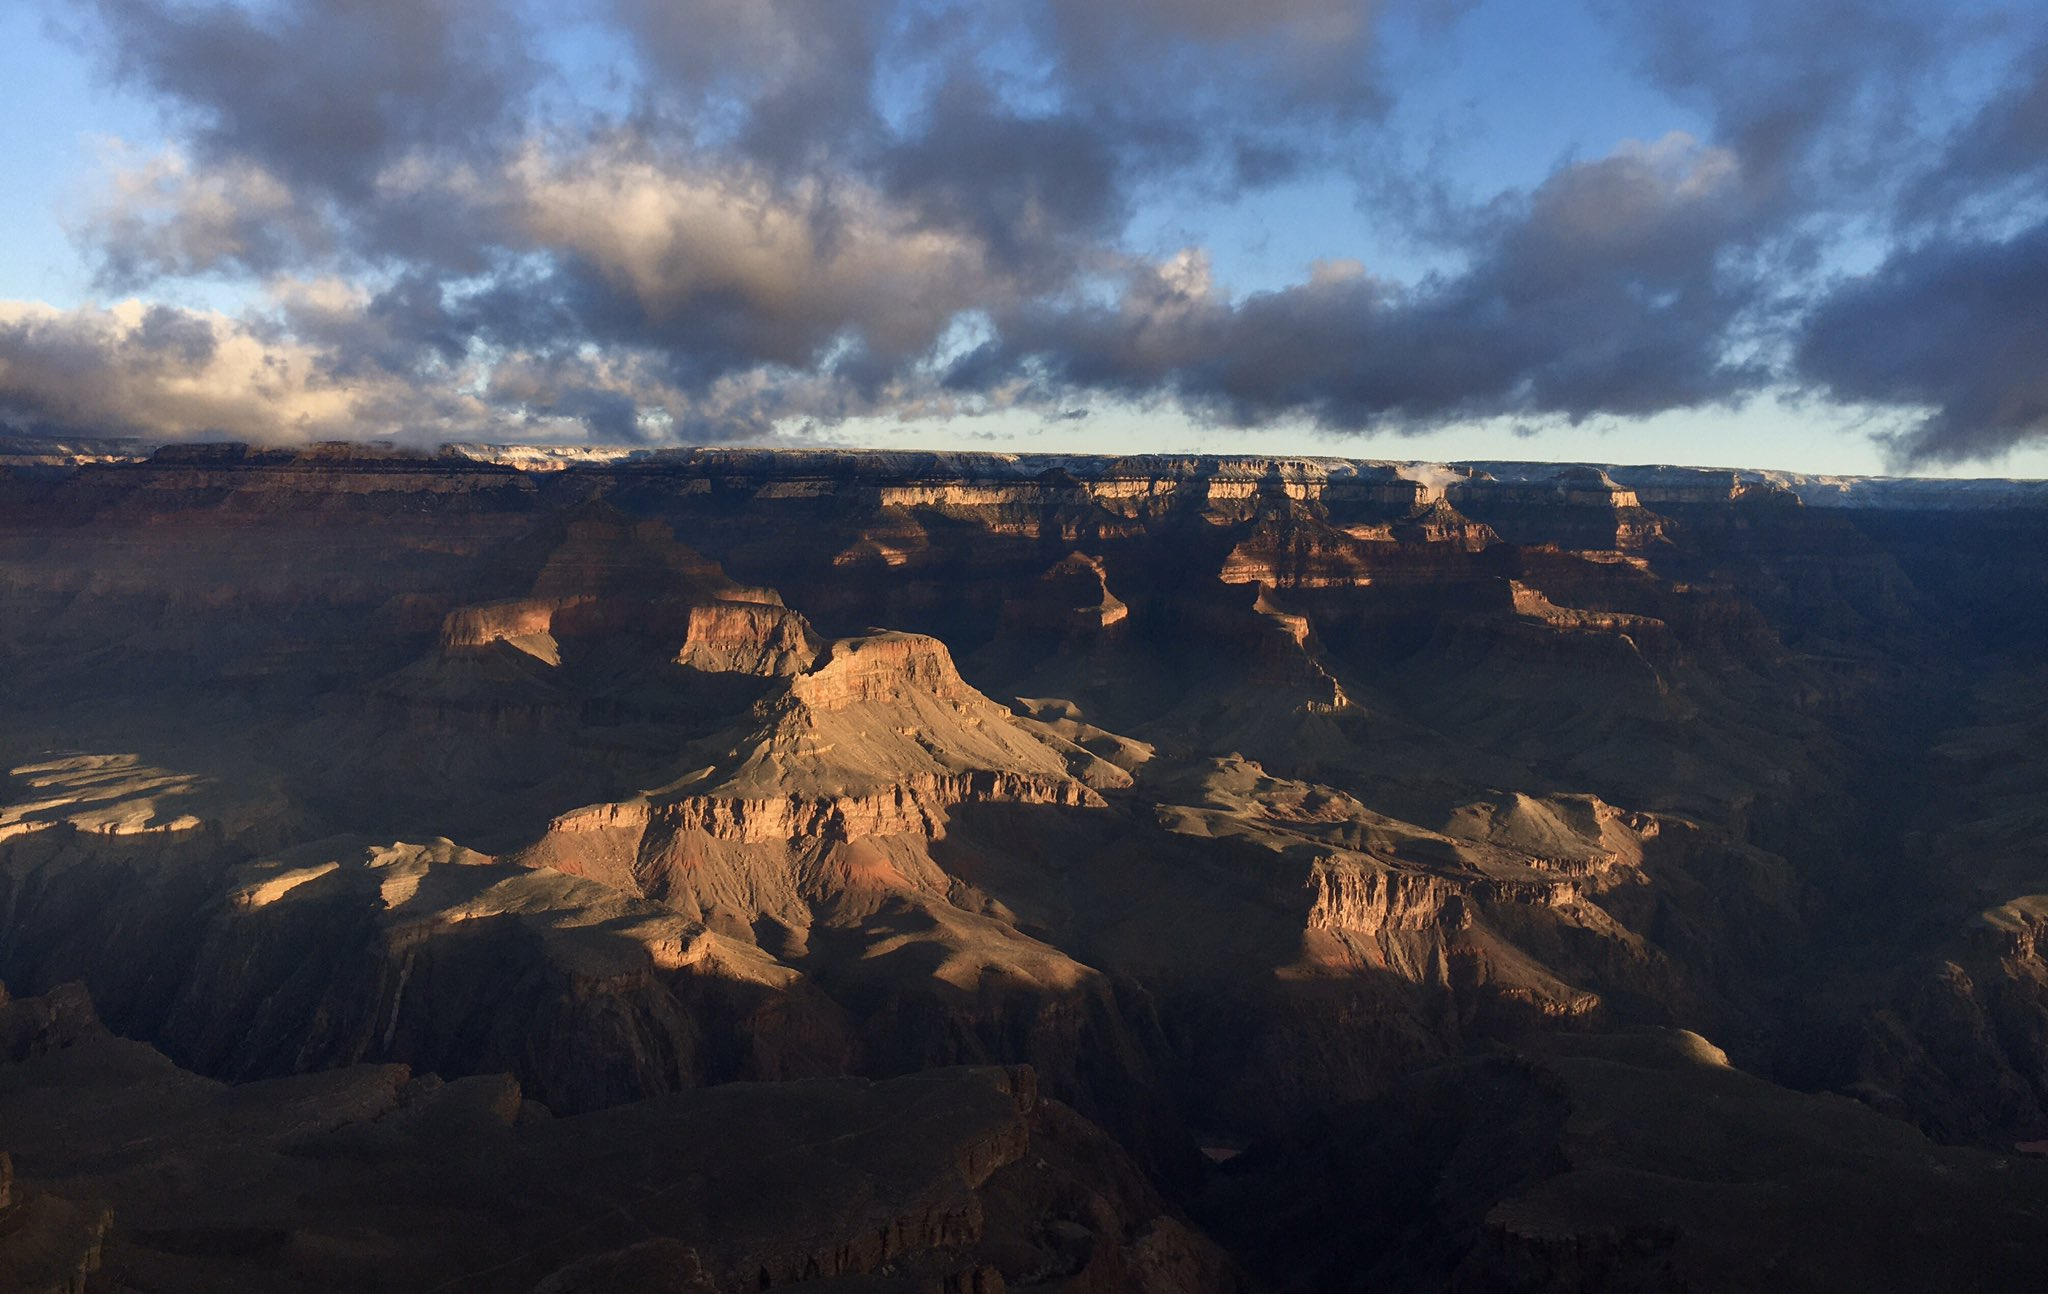 A dusting of snow last night, with a winter storm passing through this morning. (Monday, January 27, 2020) Dry weather returns tonight through Wednesday morning. Another chance of showers arrives Wednesday afternoon through Thursday morning. #GrandCanyon #RightNow #Arizona https://t.co/LBz45mswPW